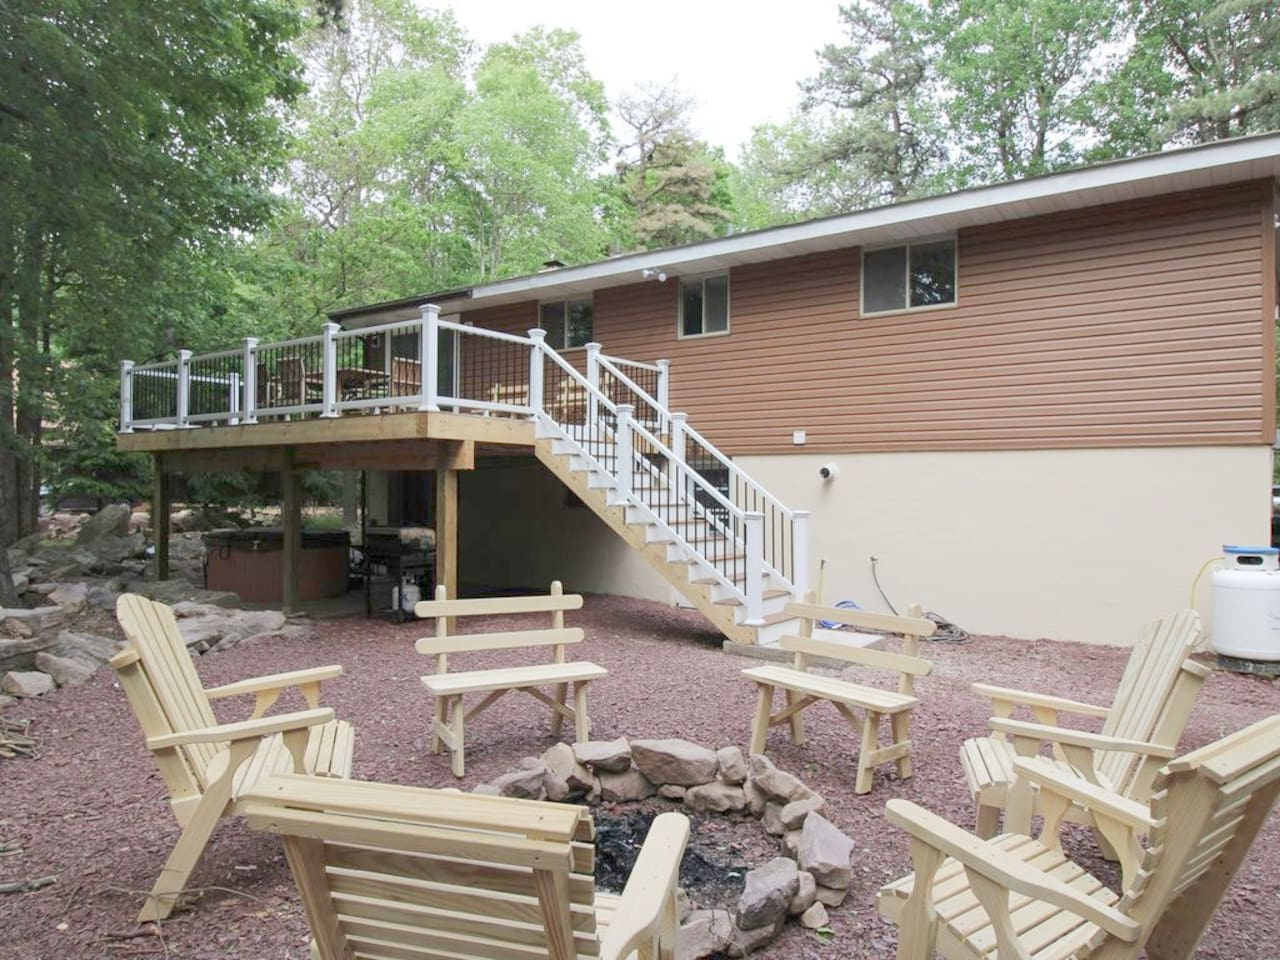 Back of house with fire pit and hot tub